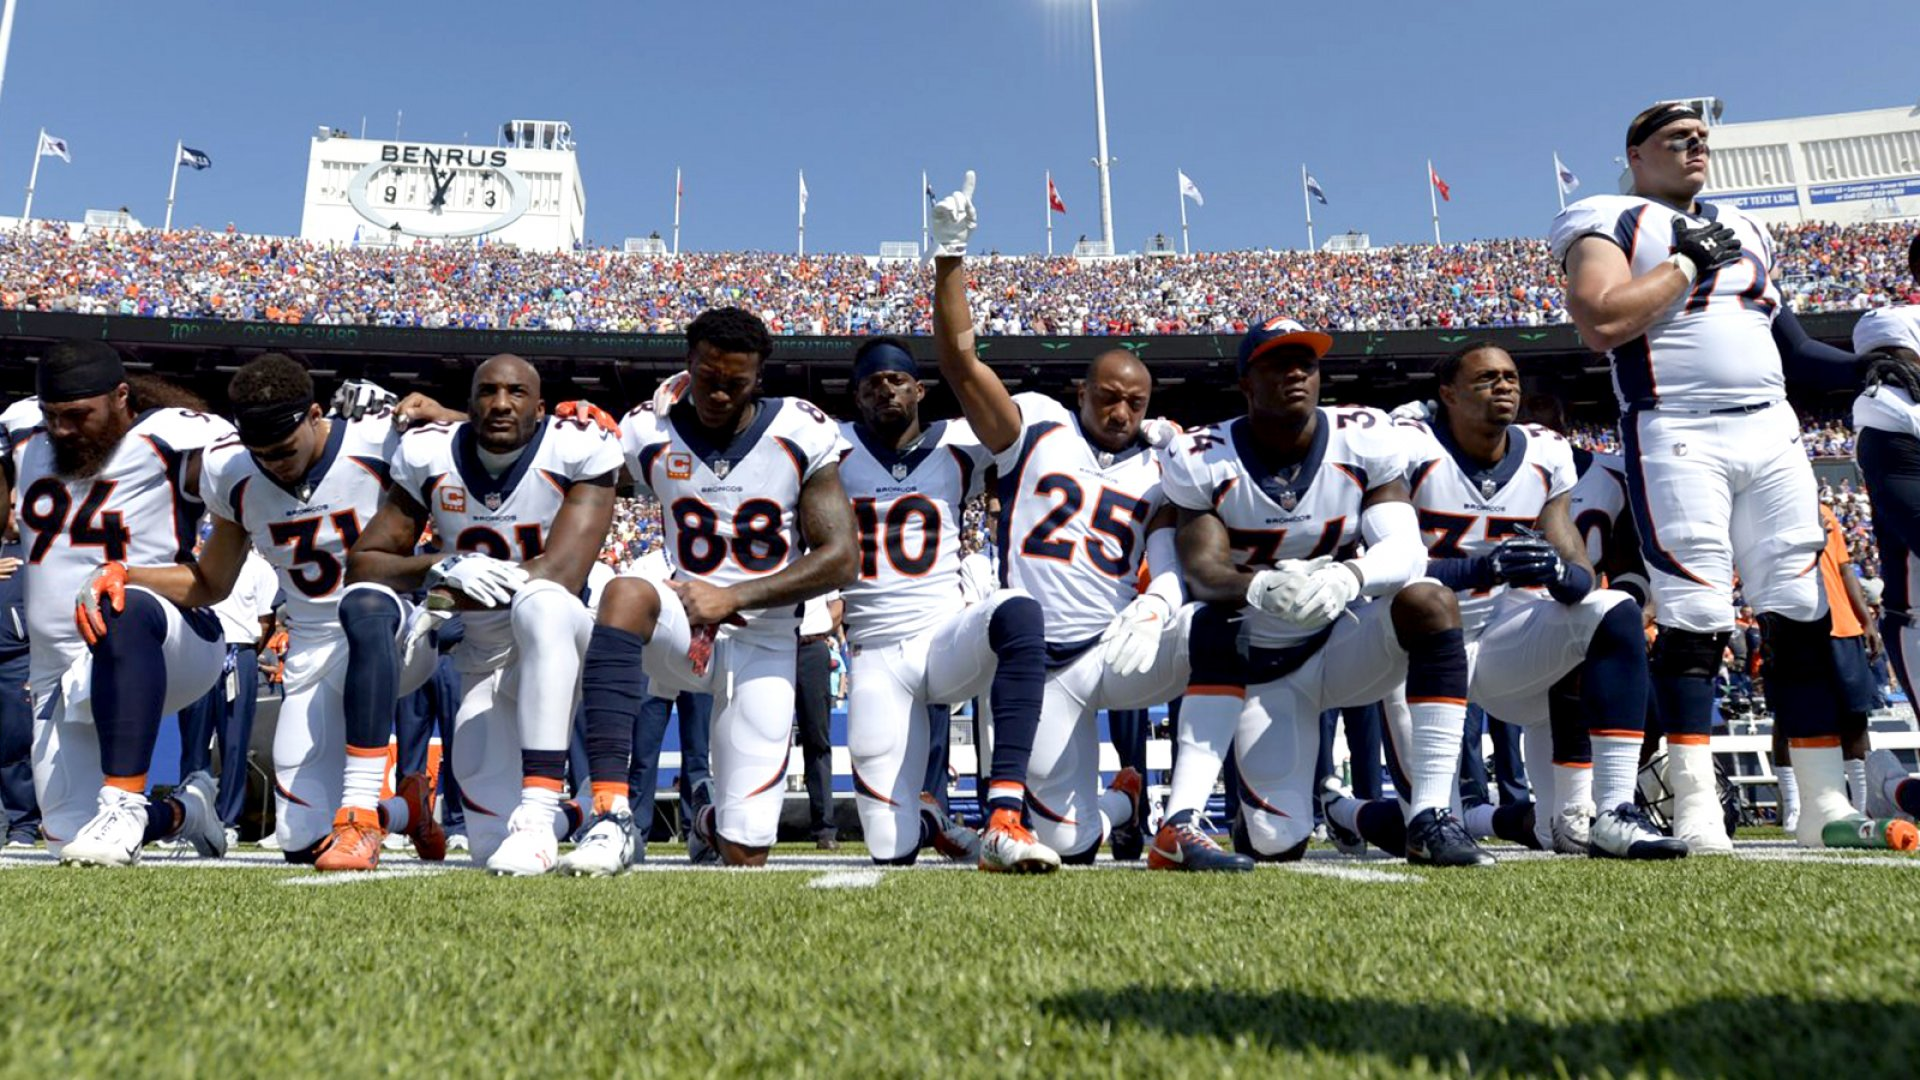 Denver Broncos team take a knee during the national anthem before a game against the Buffalo Bills on September 24, 2017